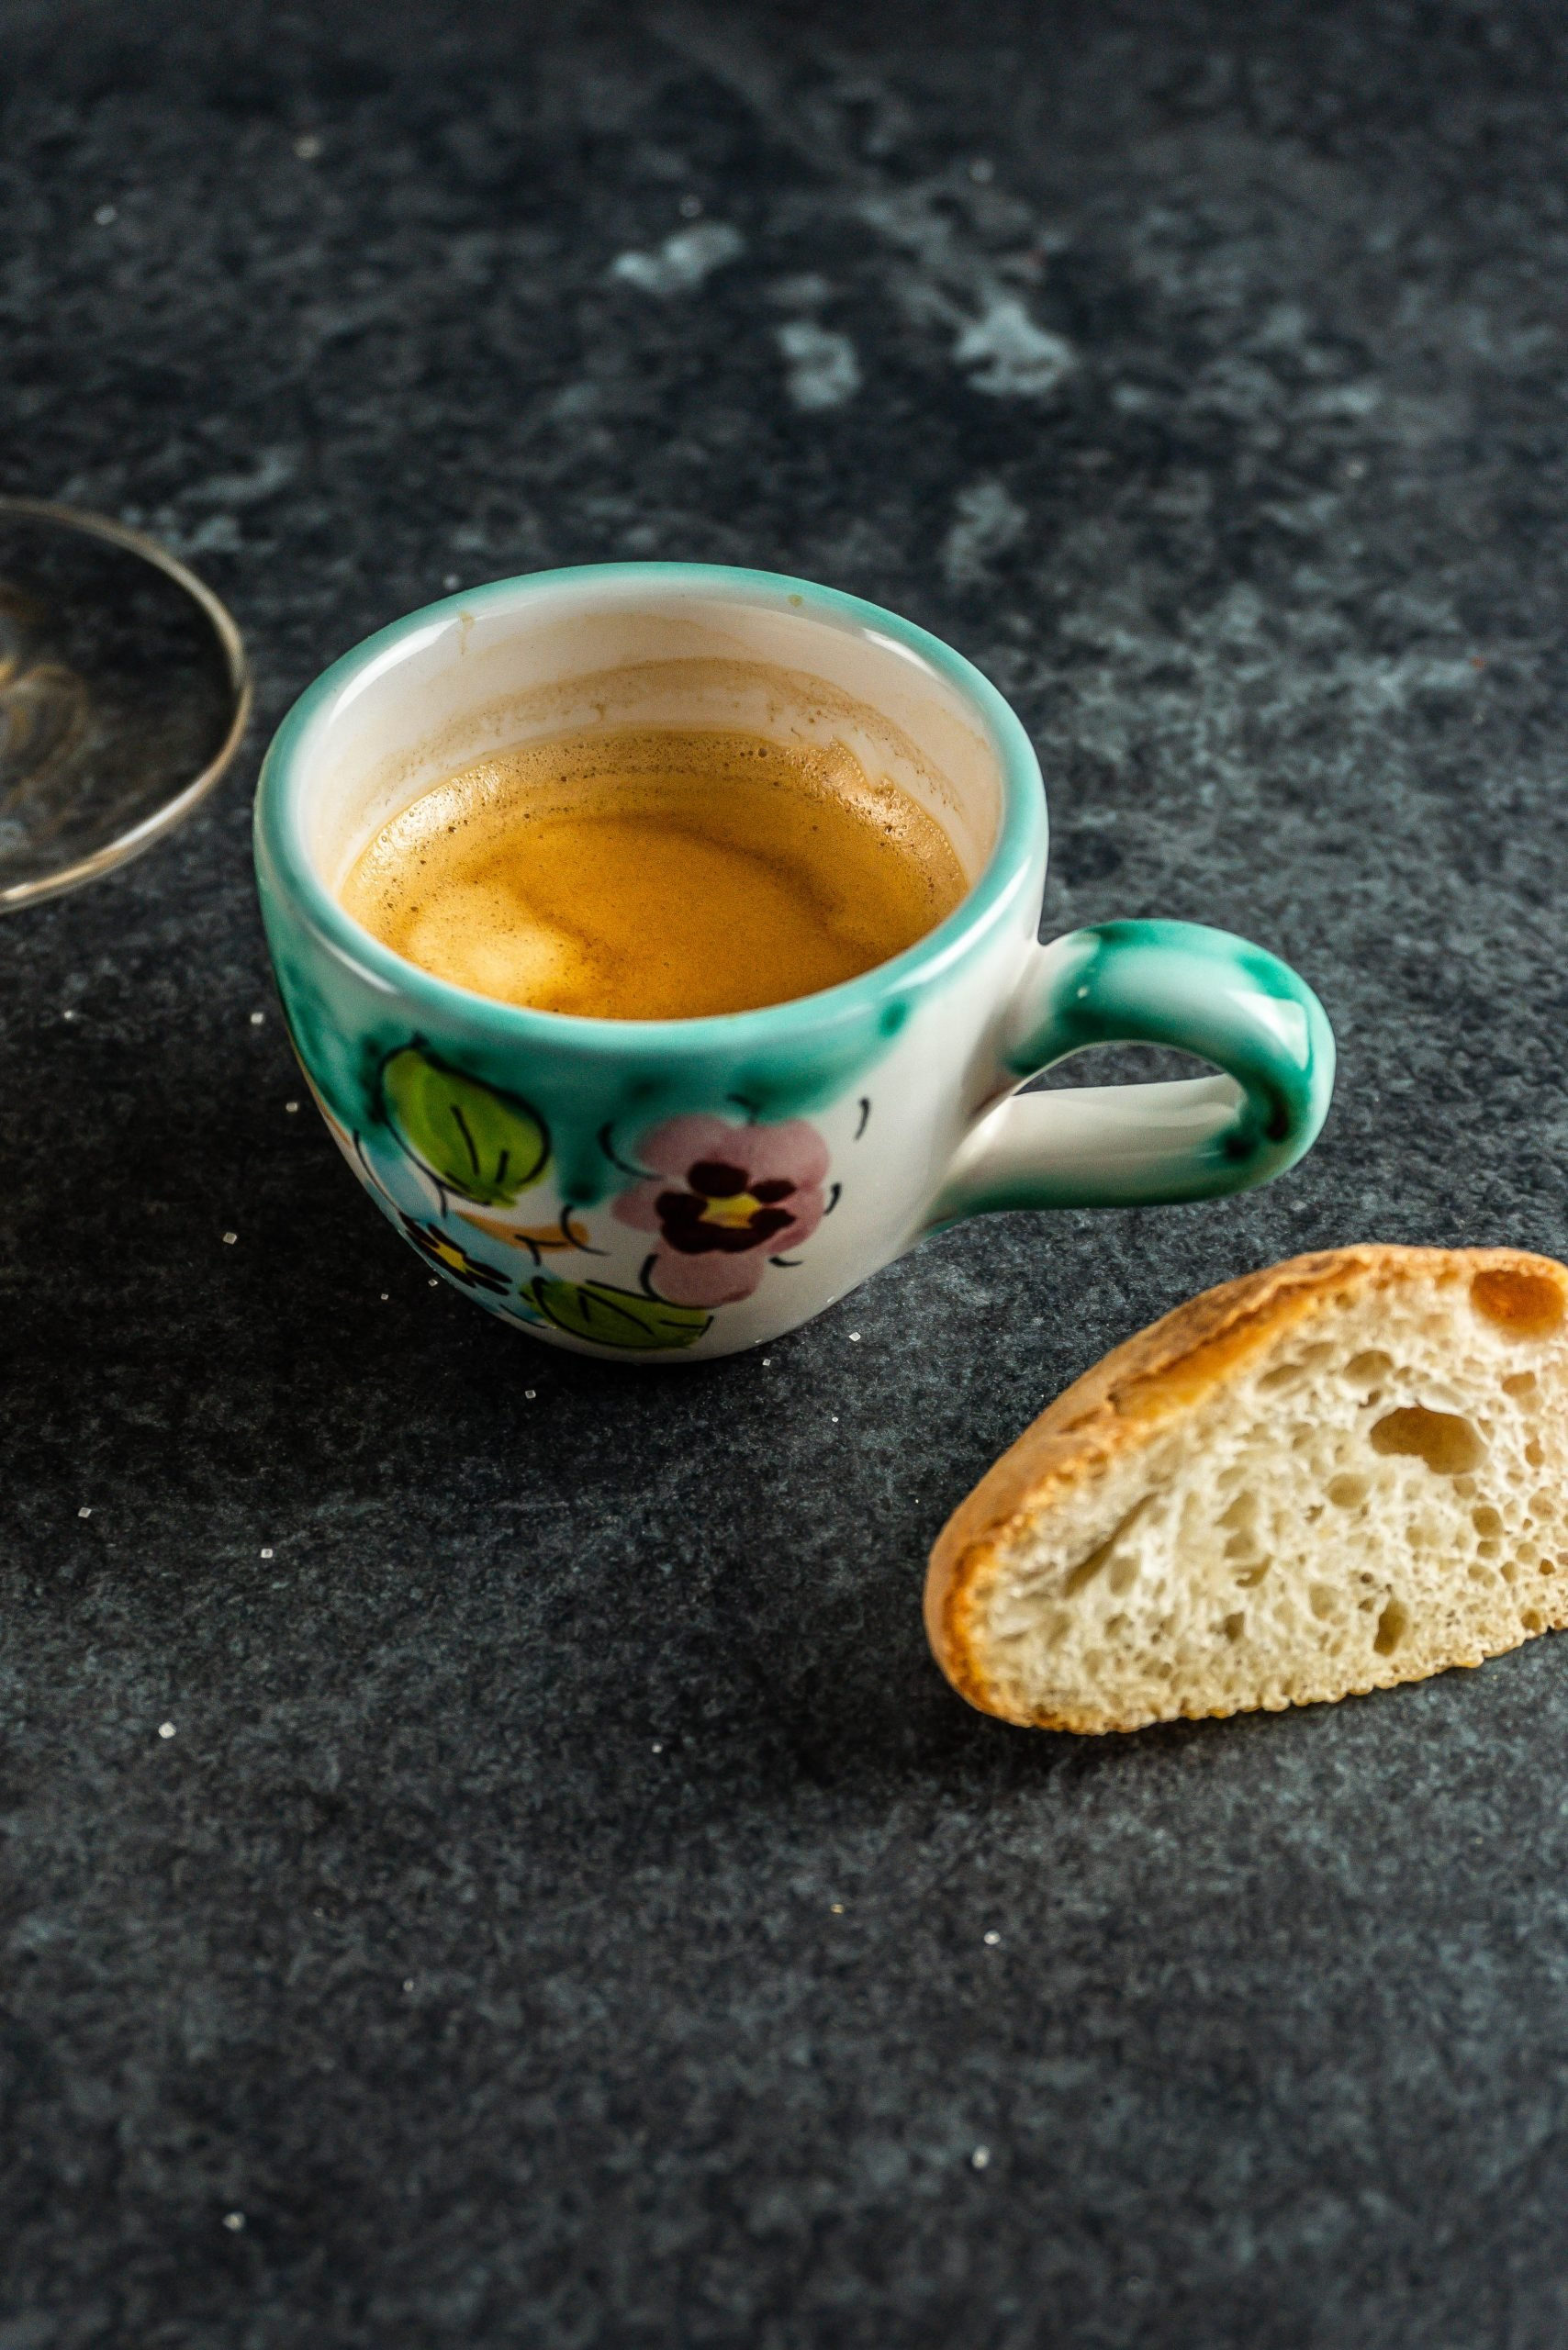 A cup of espresso coffee on a dark background with a slice of white bread visible. Avoiding caffeine is one of the key components in how to combat anxiety - part 1